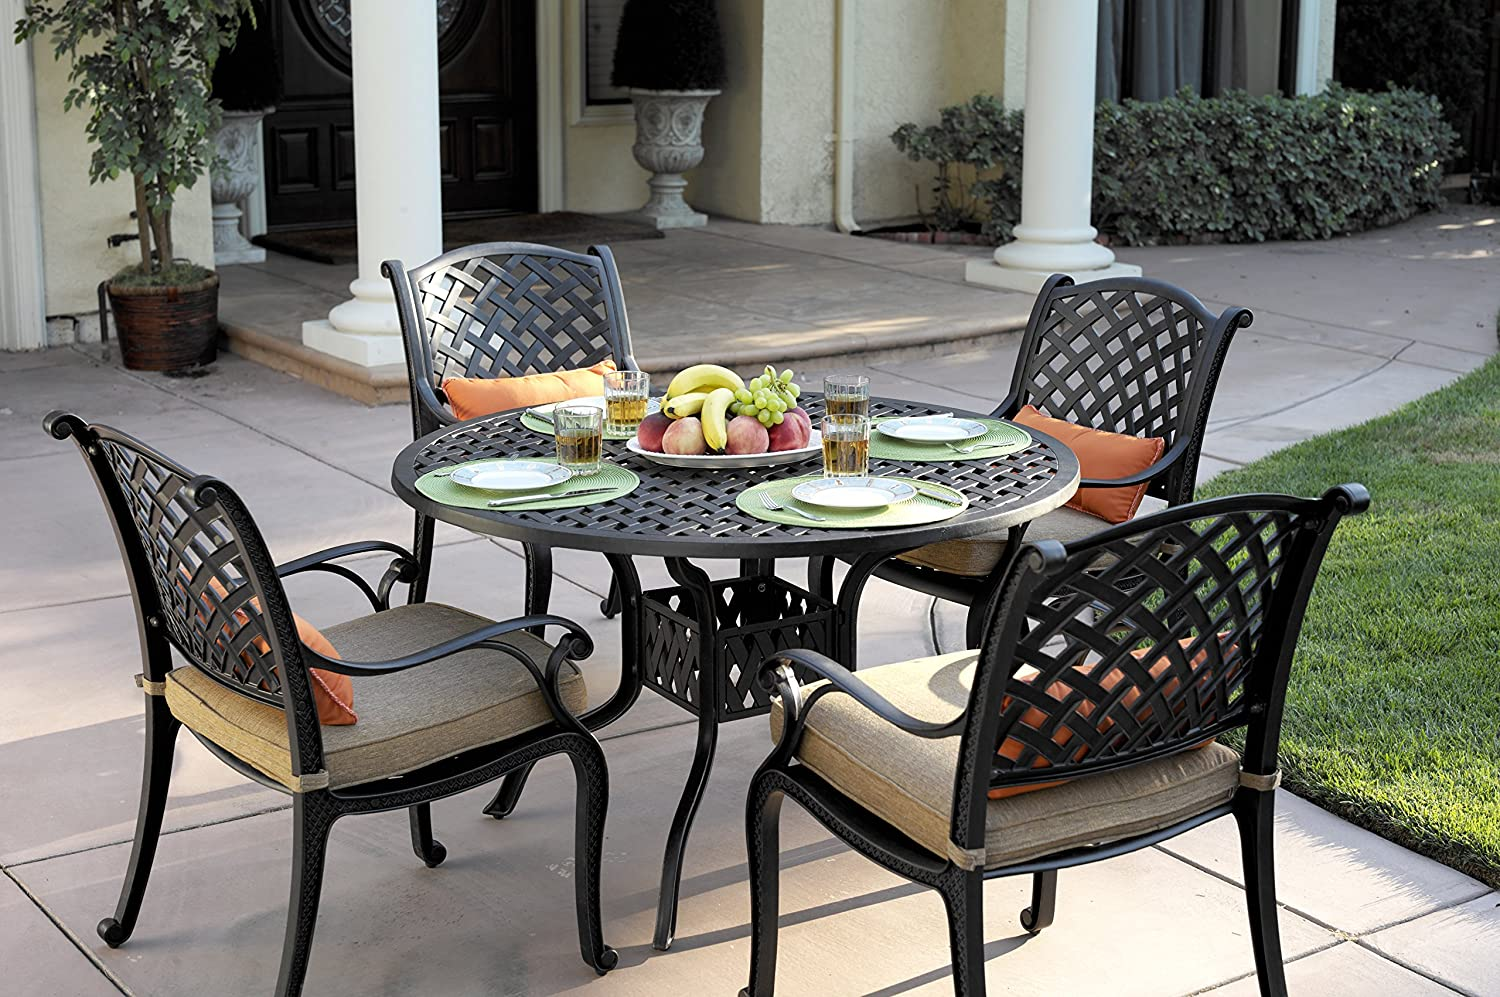 Amazon Darlee Nassau Cast Aluminum 5 Piece Dining Set With Seat Cushions And 48 Inch Round Table Antique Bronze Finish Garden Outdoor